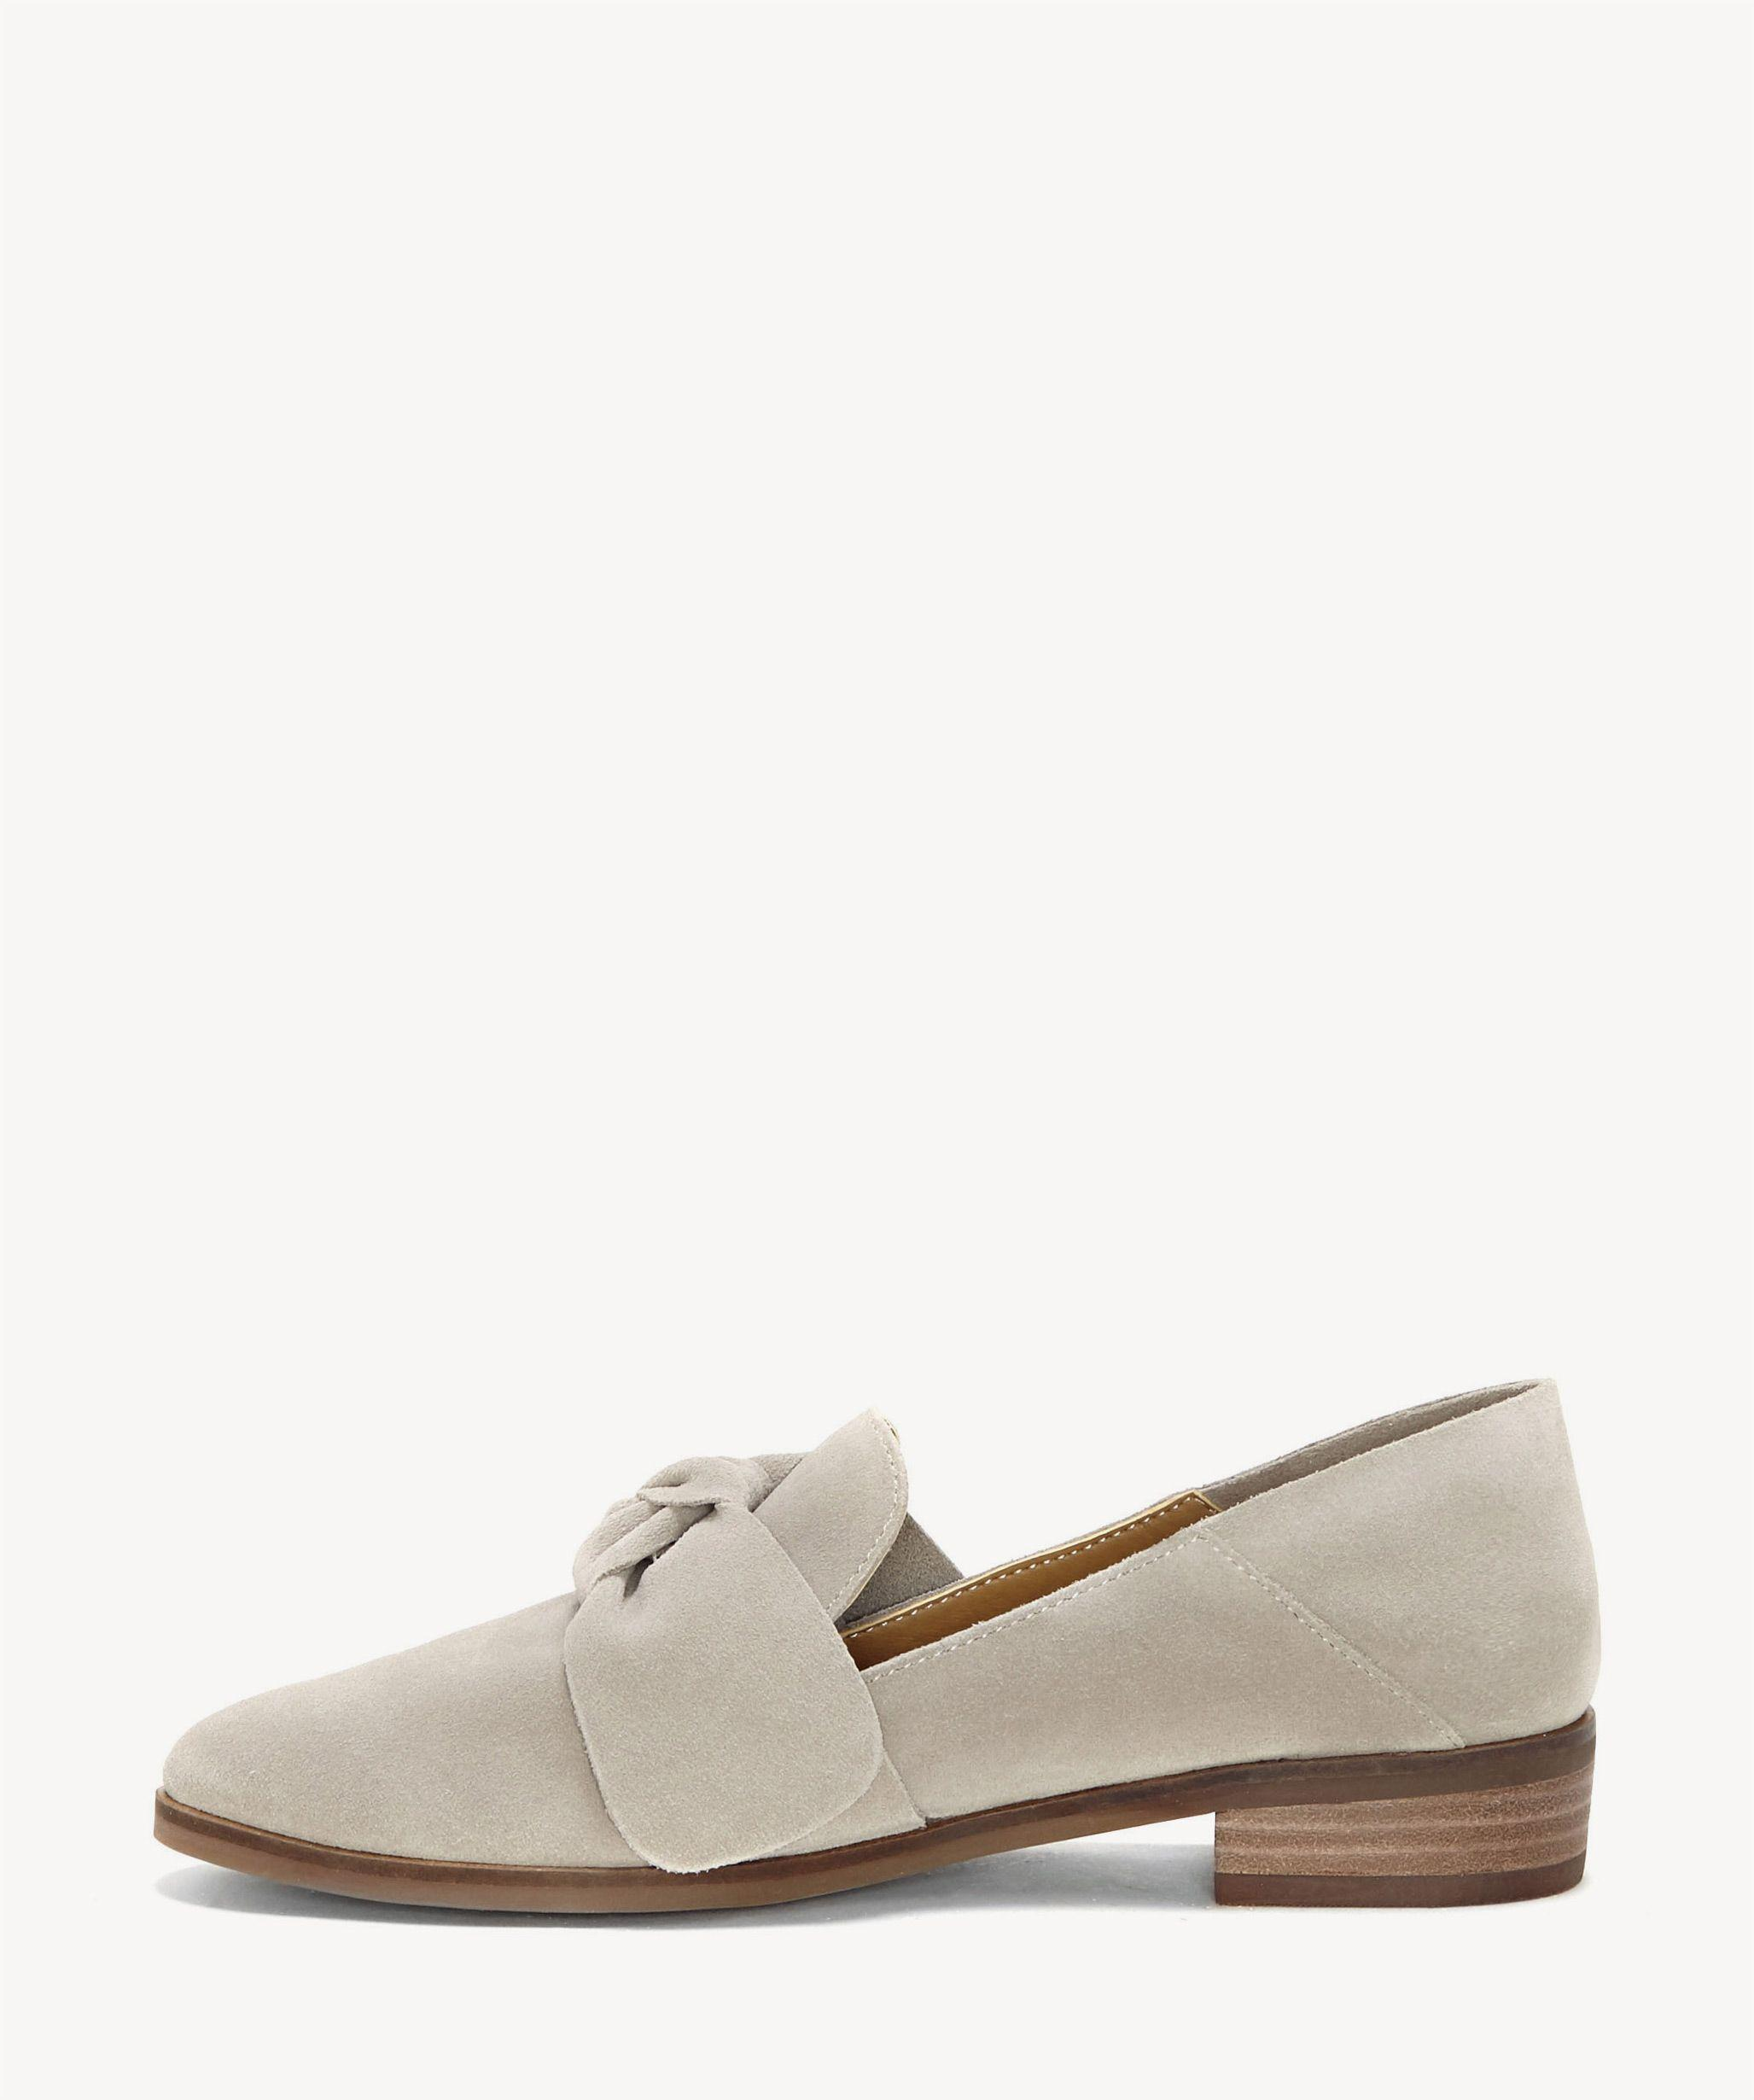 329dedef07d Lyst - Lucky Brand Cozzmo Knotted Flat